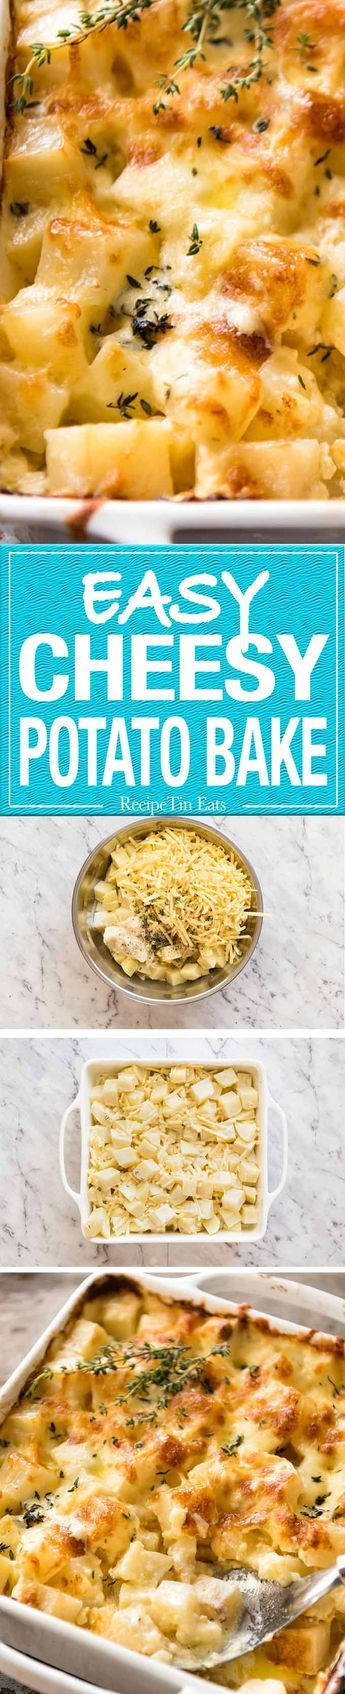 A faster, cheesier, creamier alternative to Scalloped Potatoes / Potato Gratin, this Easy Creamy Cheesy Potato Bake is made with cubed potatoes cooked in a cream and cheese sauce. www.recipetineats.com